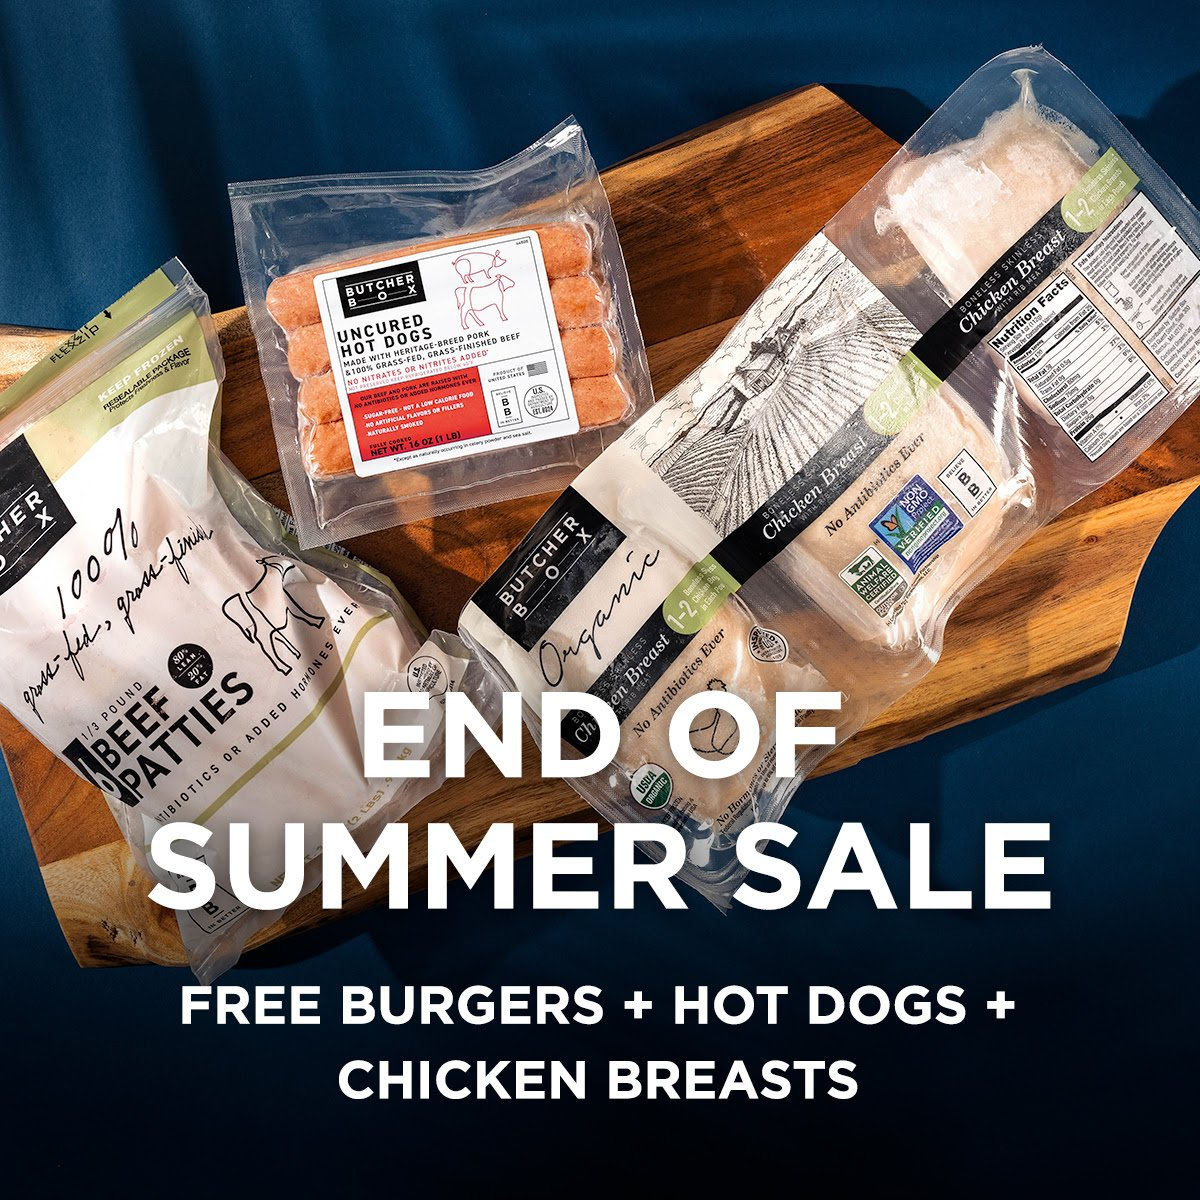 ButcherBox: Take An Extra $10 Off